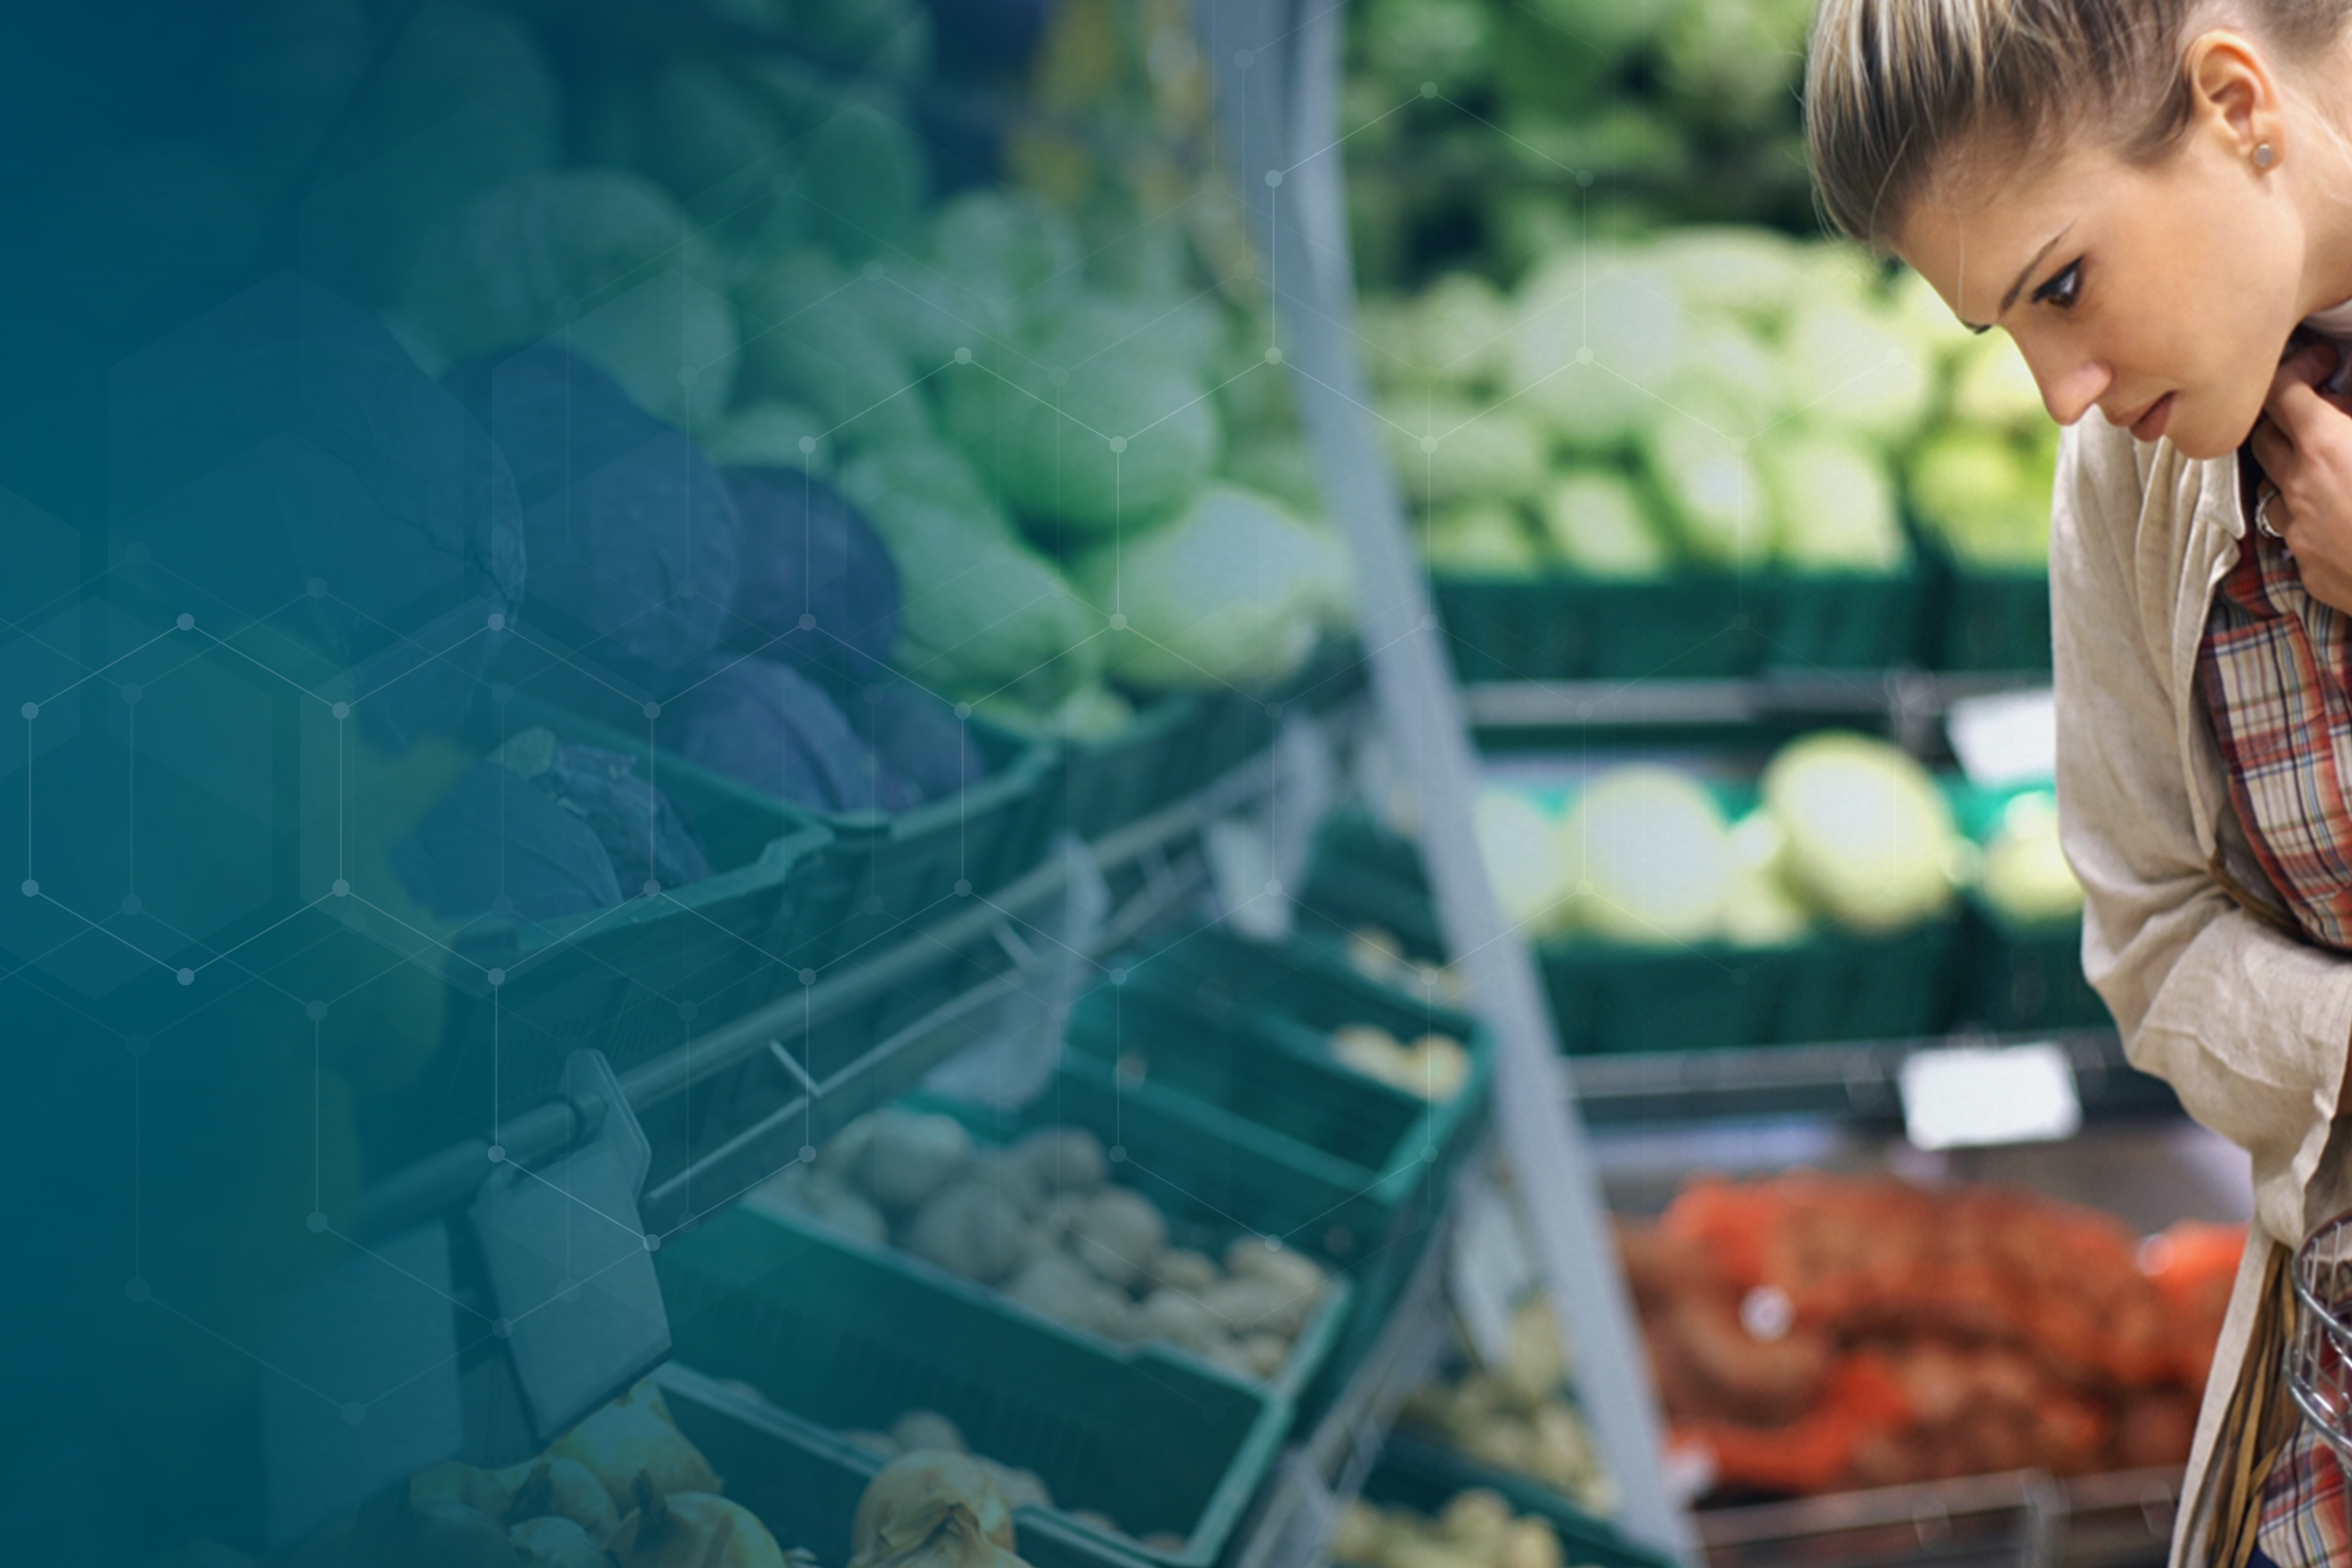 Woman looking at baskets of fresh vegetables in market with molecular overlay